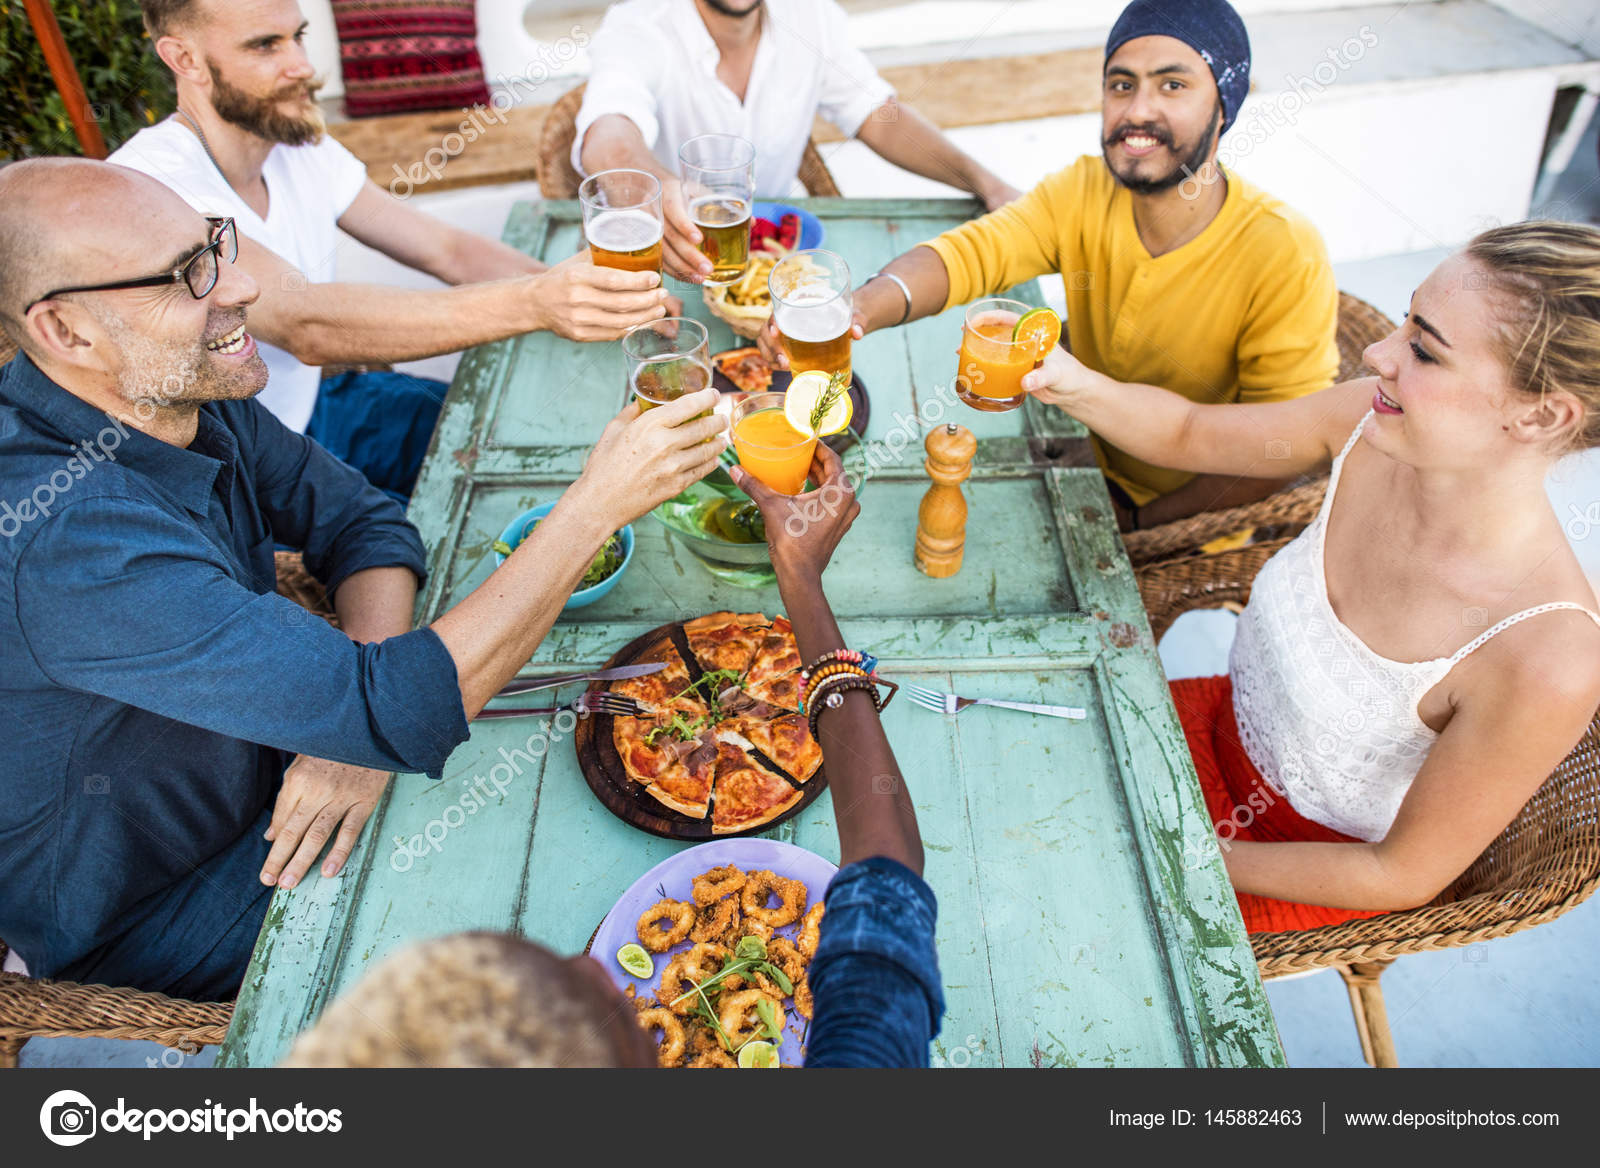 People Eating And Drinking On Picnic